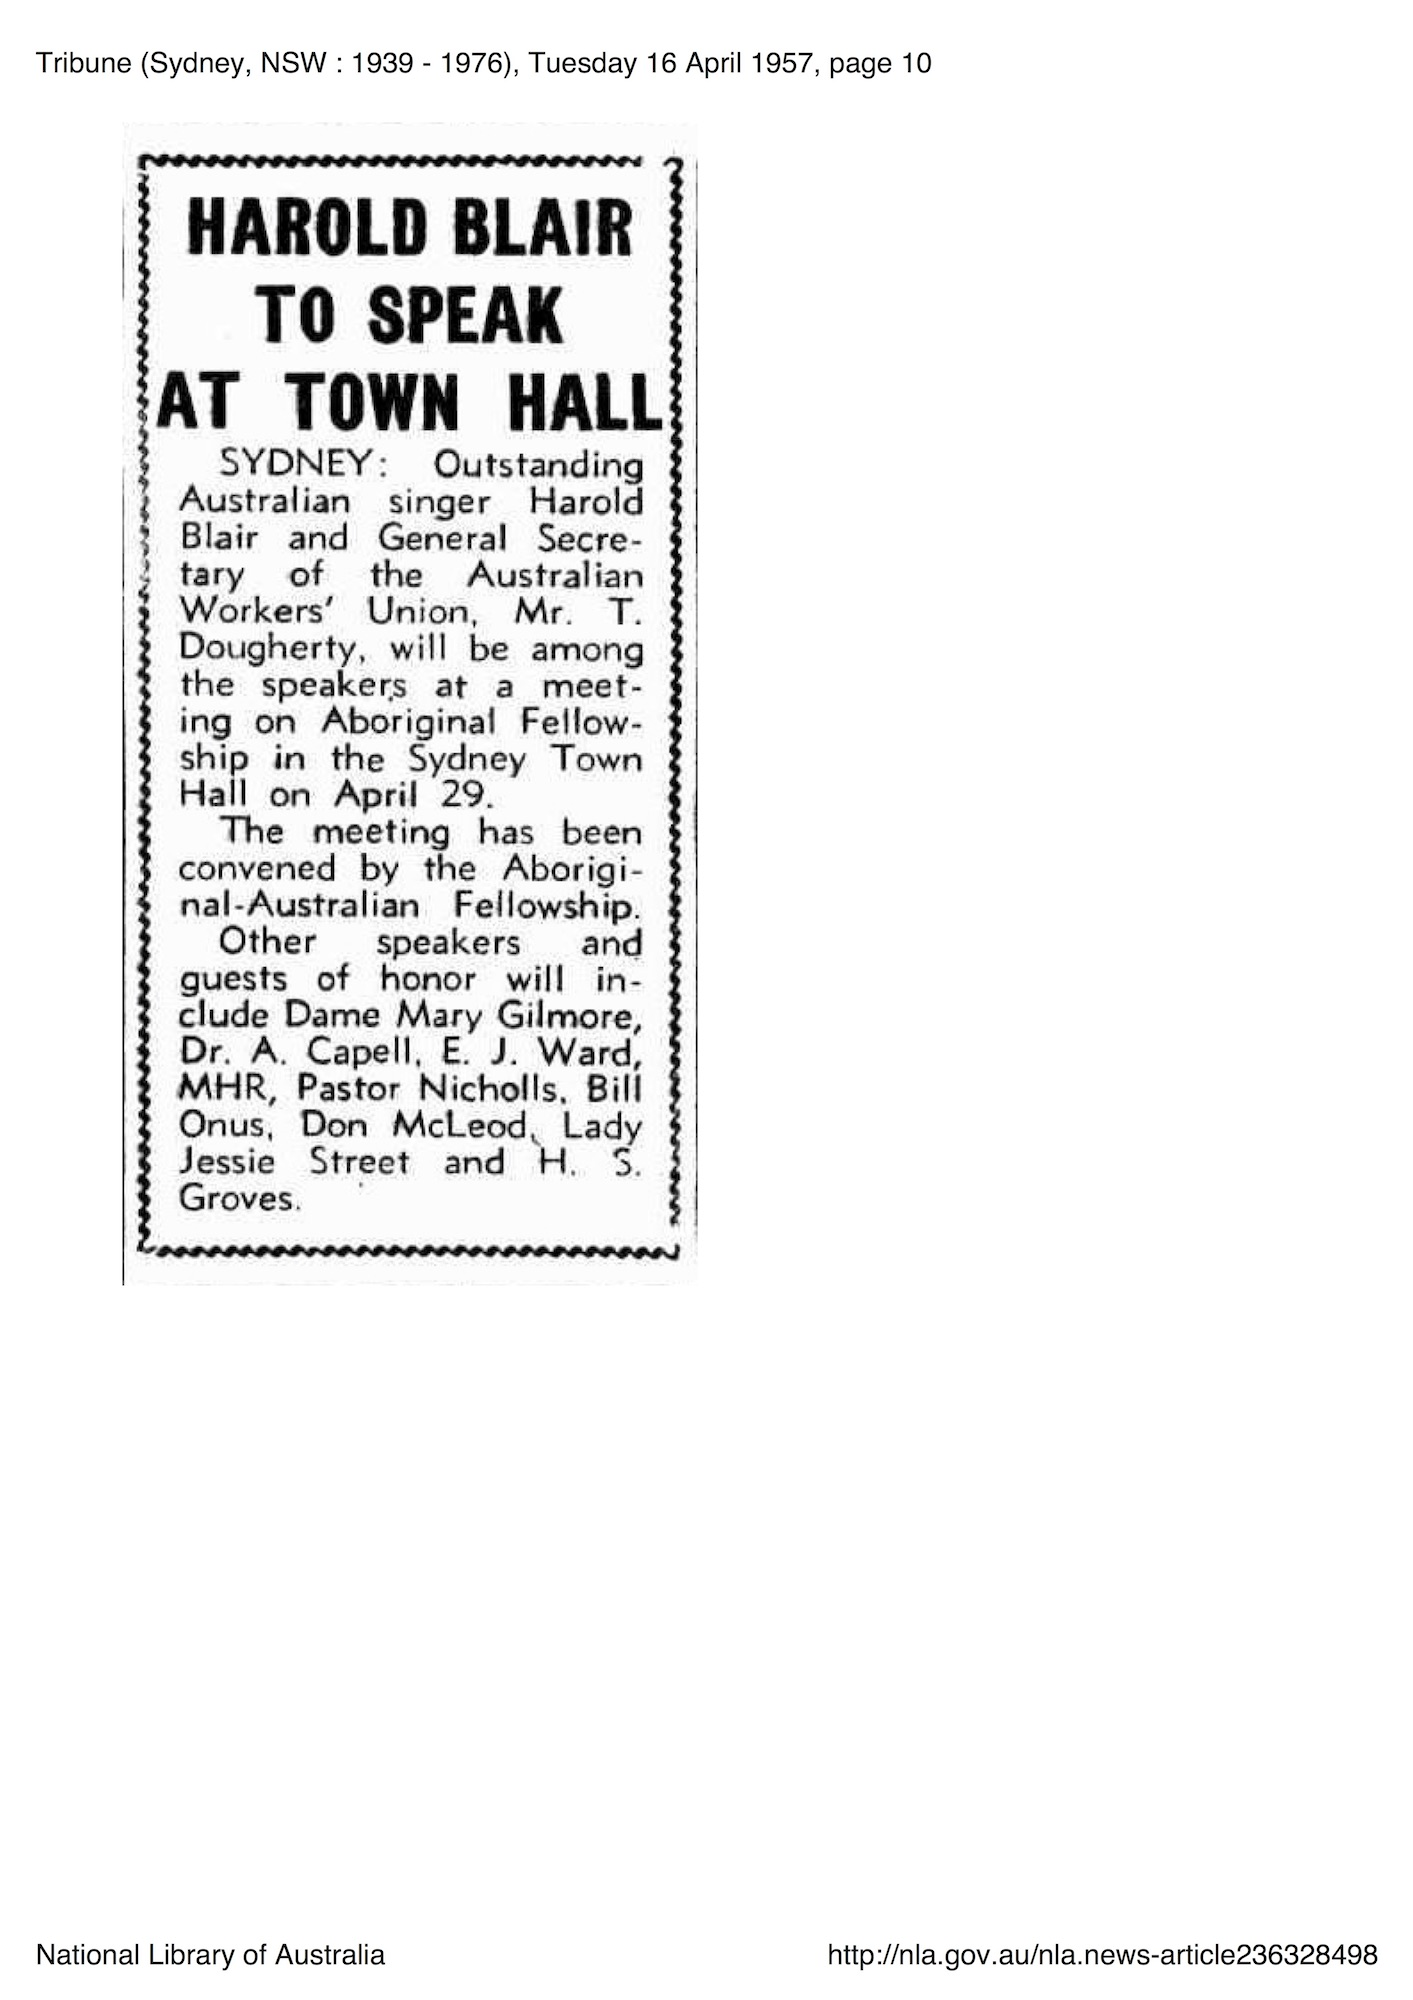 Tribune, 16 April 1957, p. 10, 'Harold Blair to Speak at Town Hall'